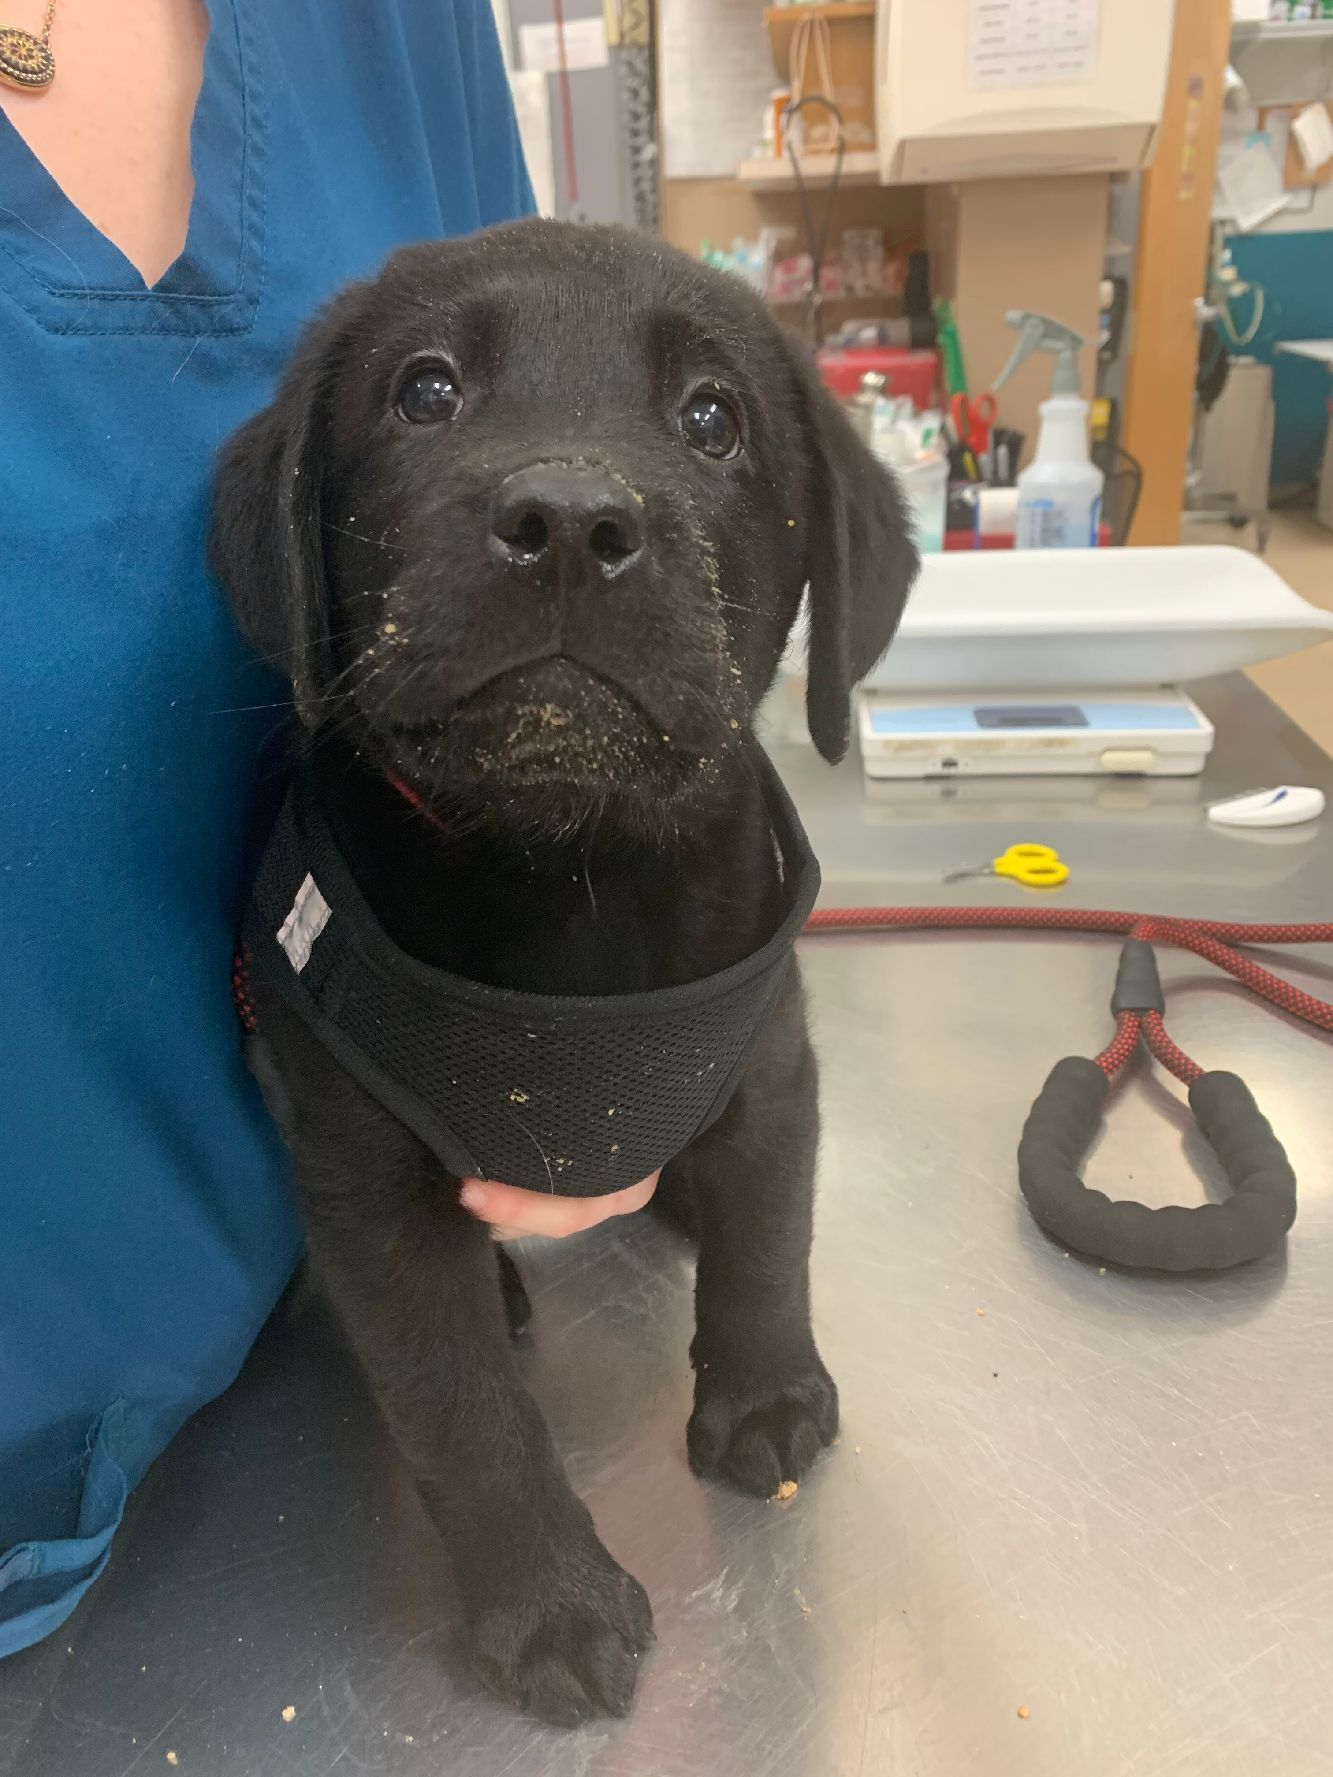 Today's awww.... Meet Sawyer! He's an 8 week old Lab puppy